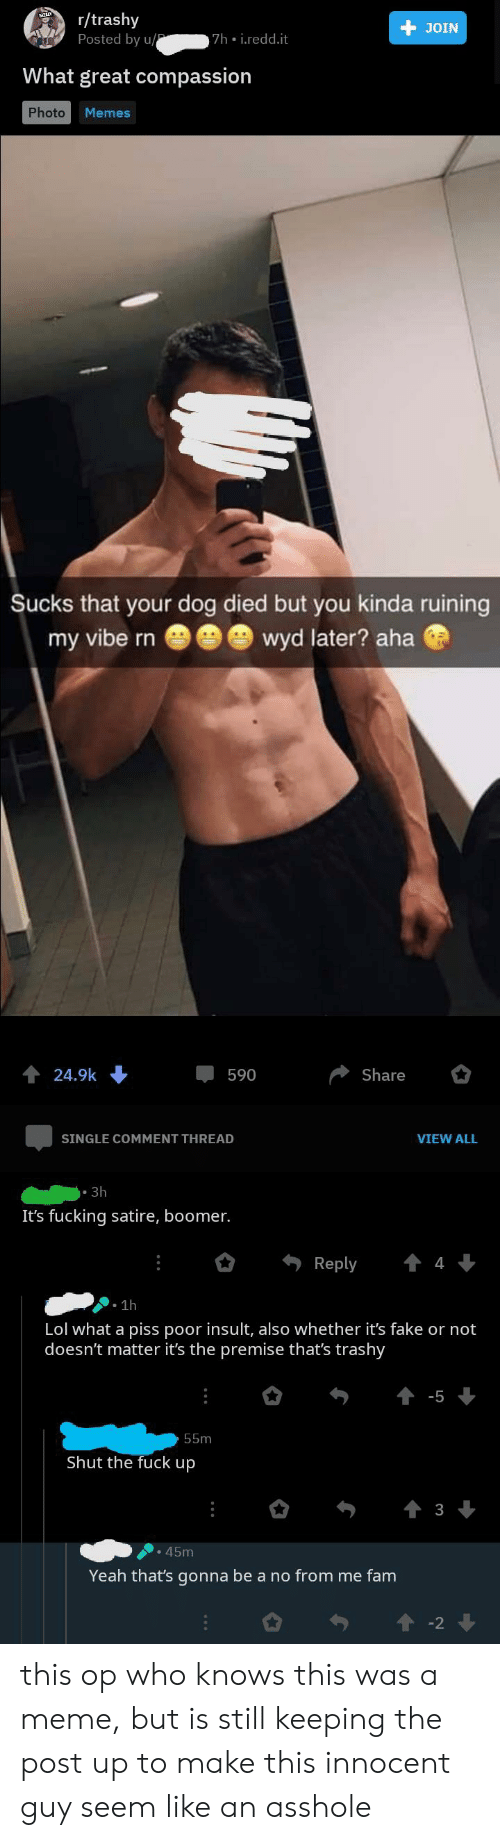 Thats Gonna Be A No: r/trashy  Posted by u/  JOIN  7h i.redd.it  What great compassion  Photo  Memes  Sucks that your dog died but you kinda ruining  wyd later? aha  my vibe rn  24.9k  590  Share  SINGLE COMMENT THREAD  VIEW ALL  Зh  It's fucking satire, boomer.  Reply  1h  Lol what a piss poor insult, also whether it's fake or not  doesn't matter it's the premise that's trashy  55m  Shut the fuck up  3  45m  Yeah that's gonna be a no from me fam this op who knows this was a meme, but is still keeping the post up to make this innocent guy seem like an asshole